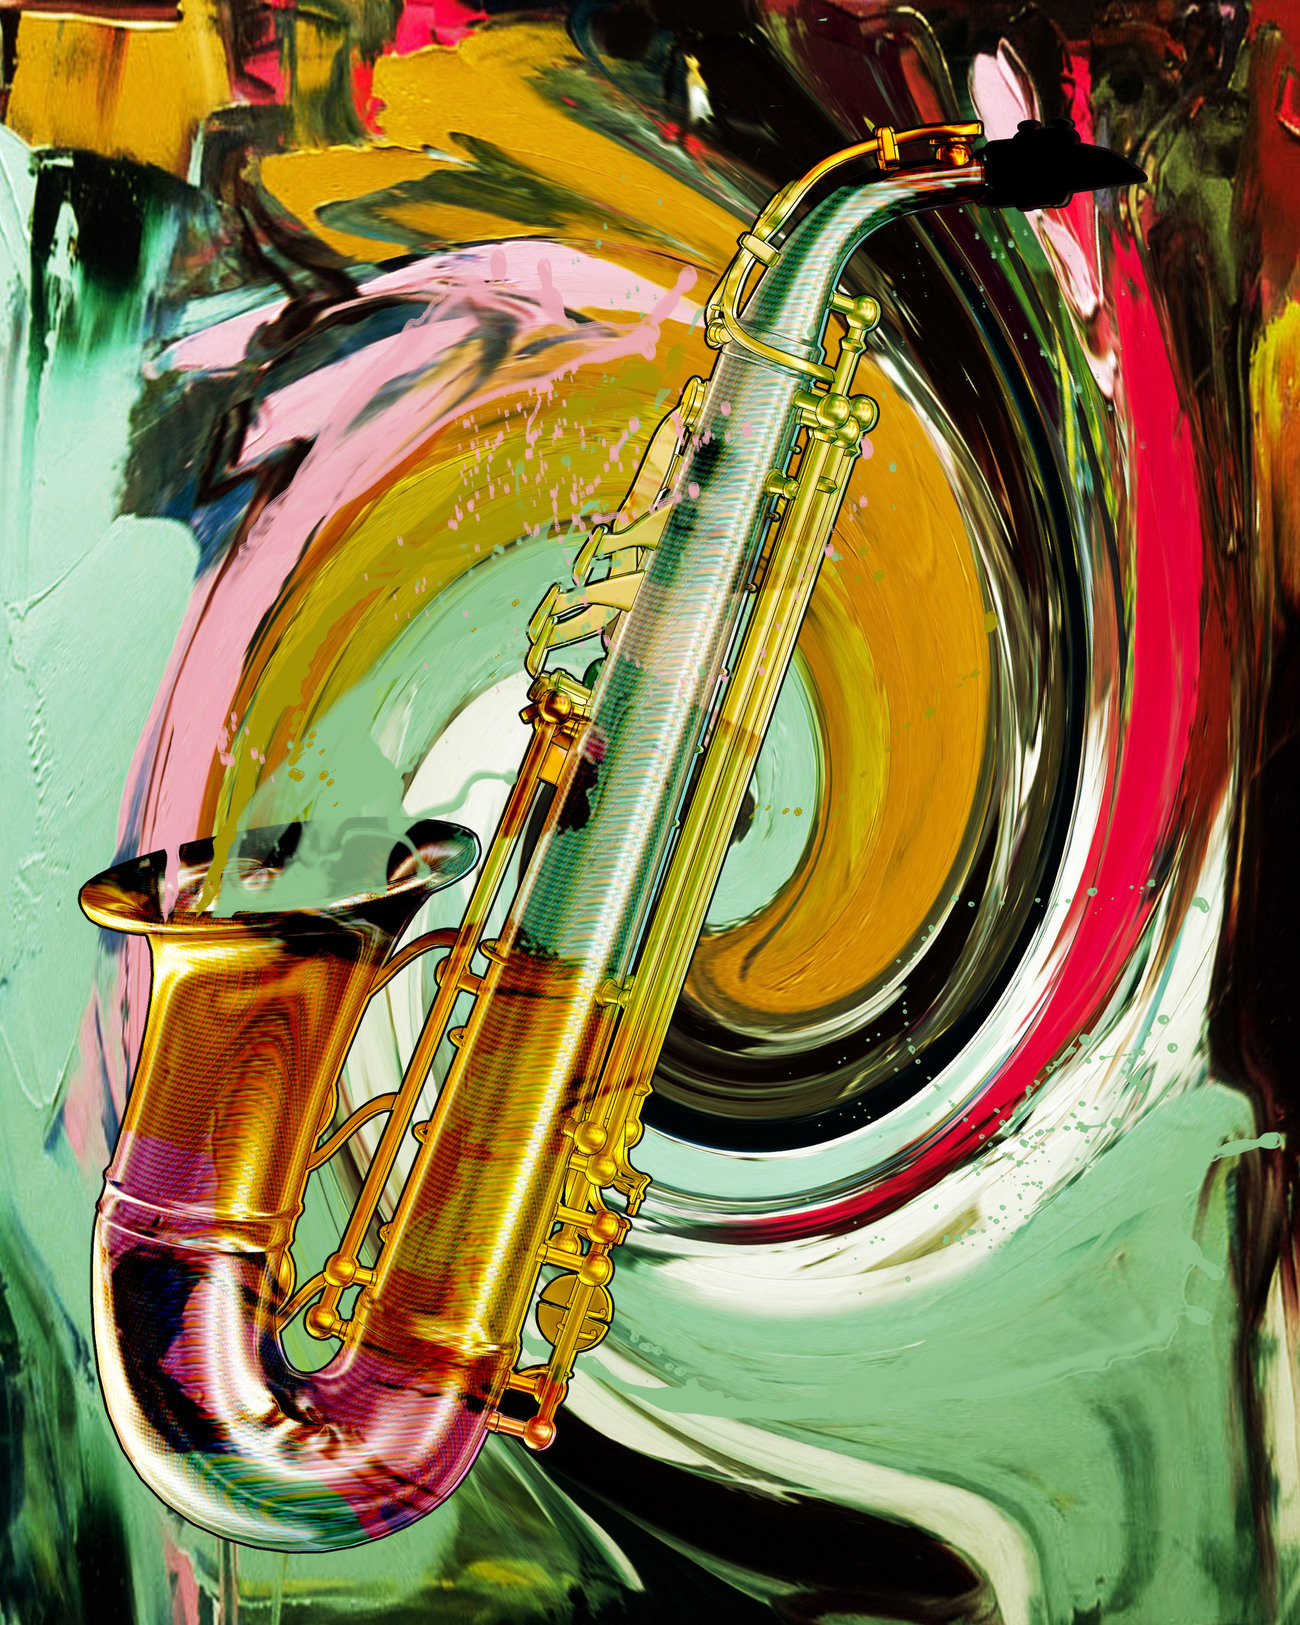 Colorful Sax by digitell